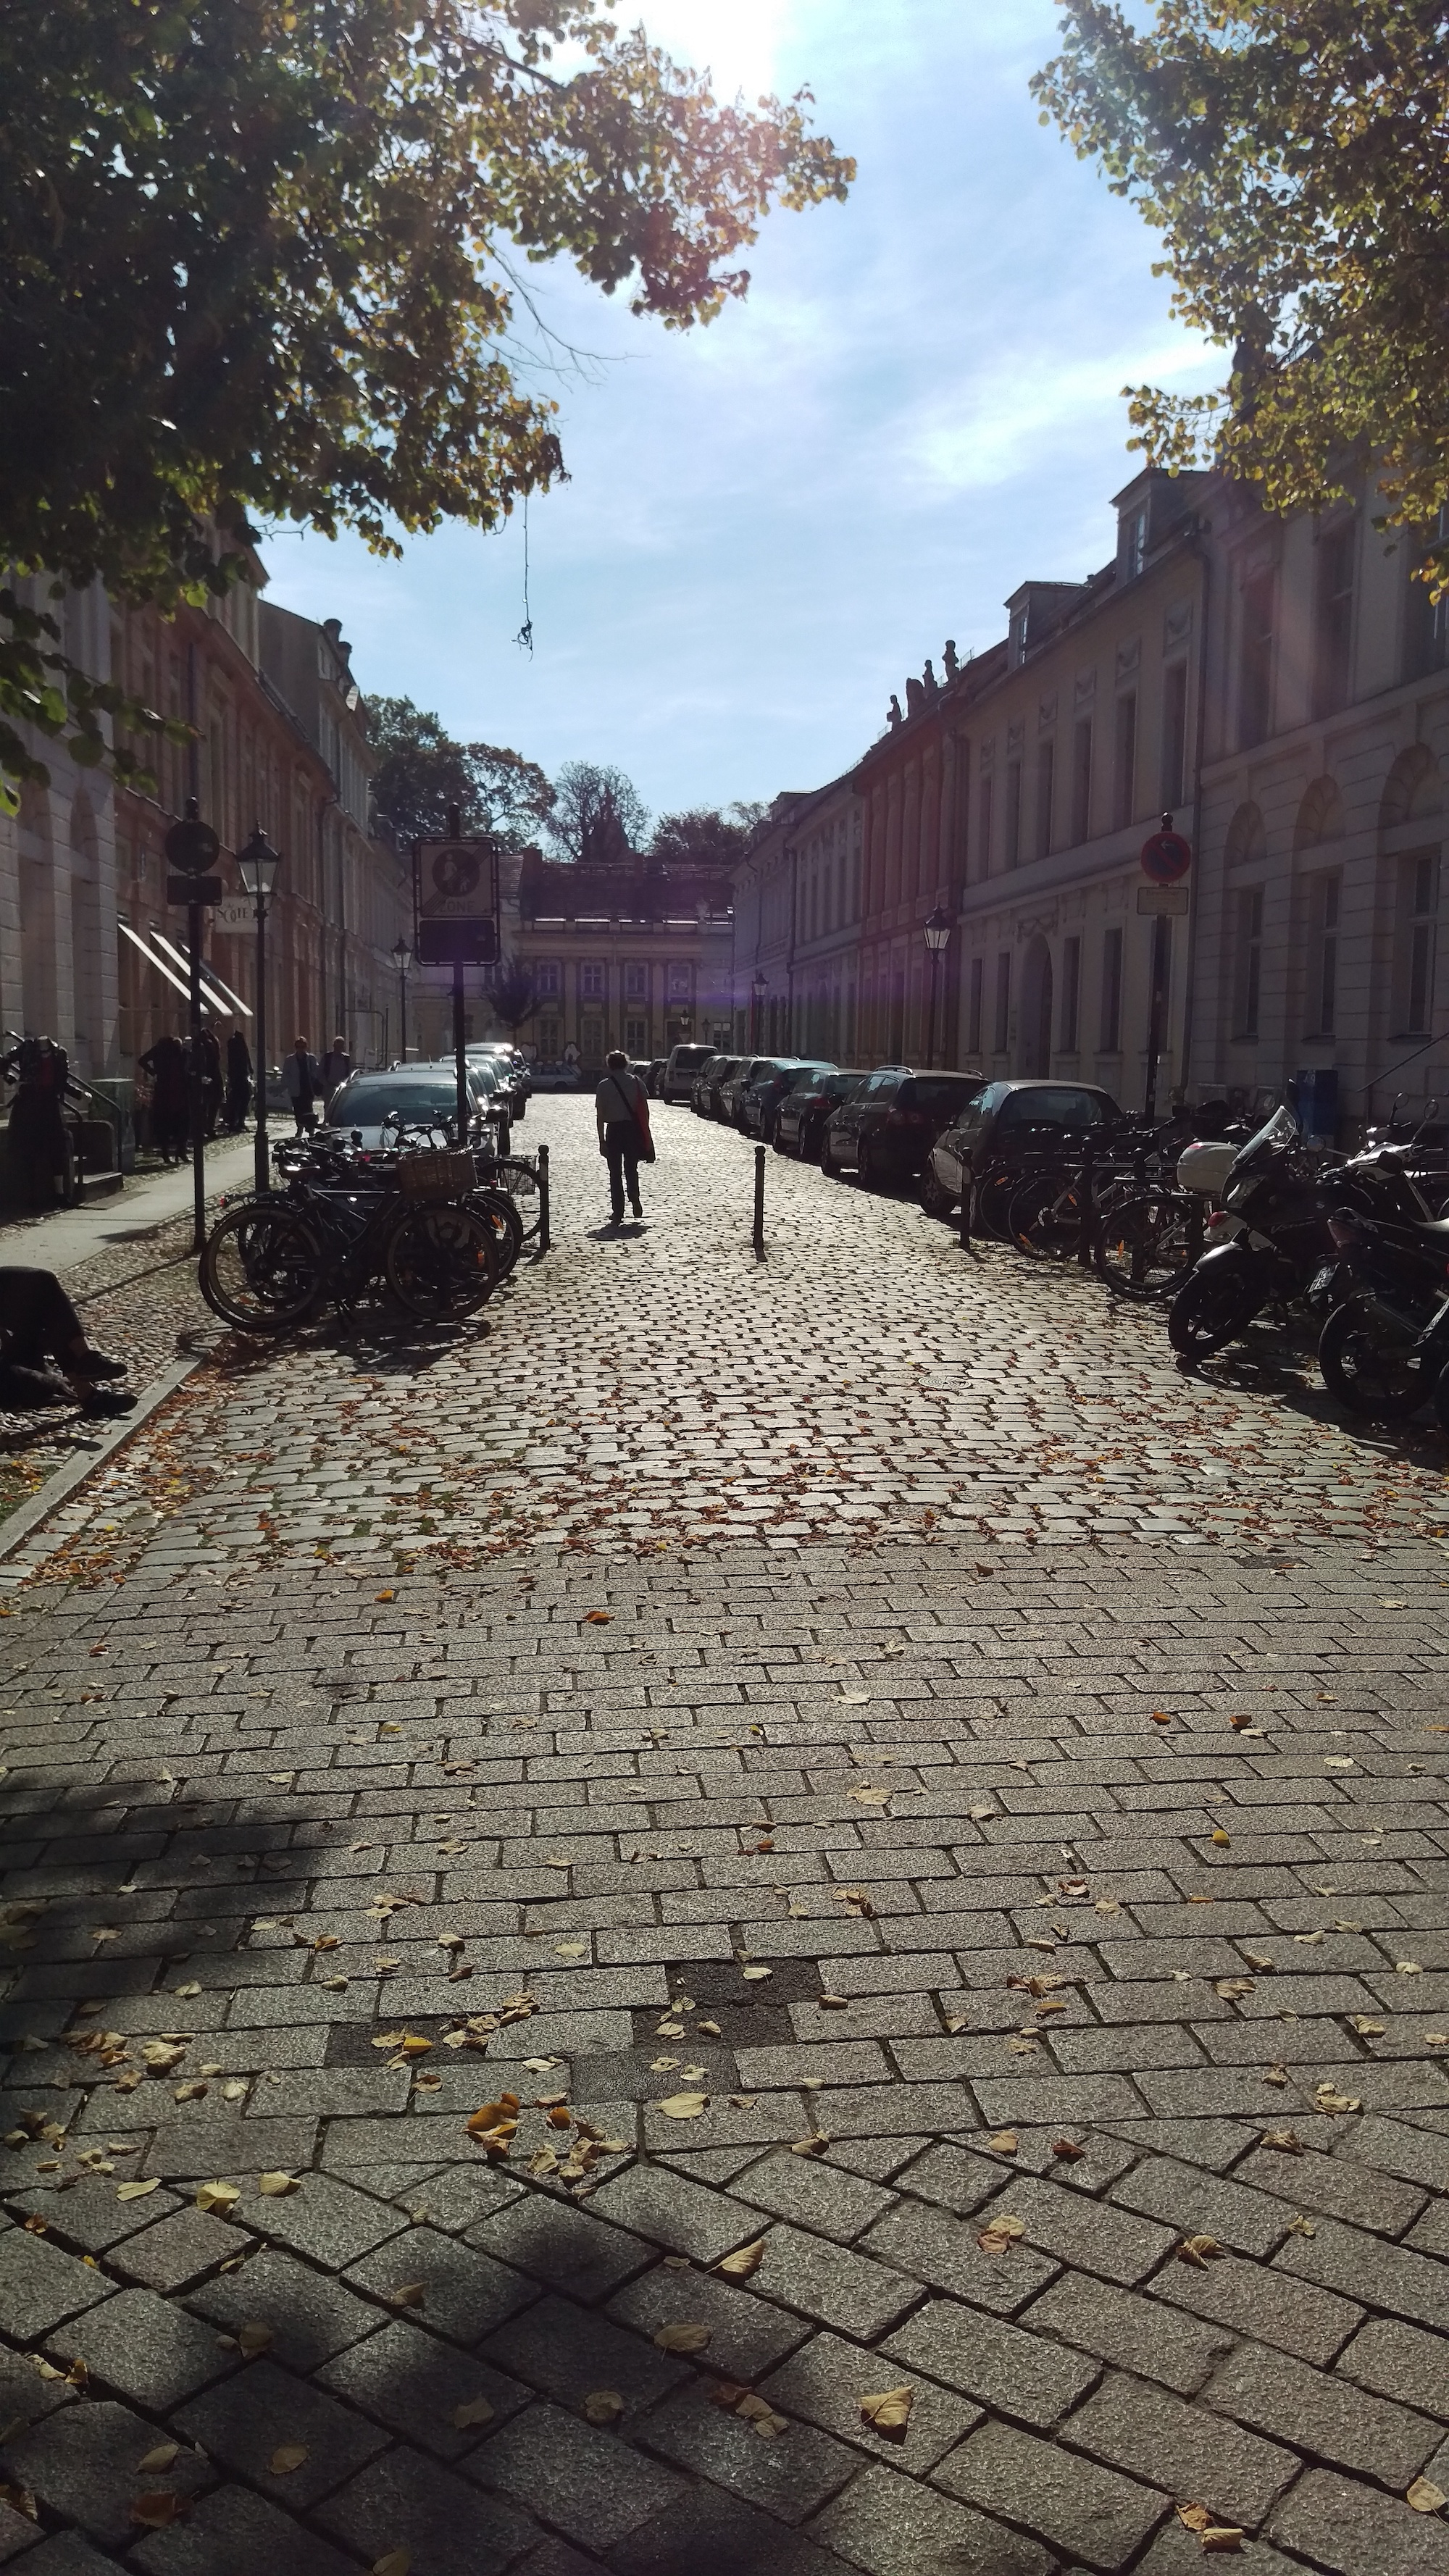 Narrow cobblestone streets in the Potsdam Ol town neighborhood.